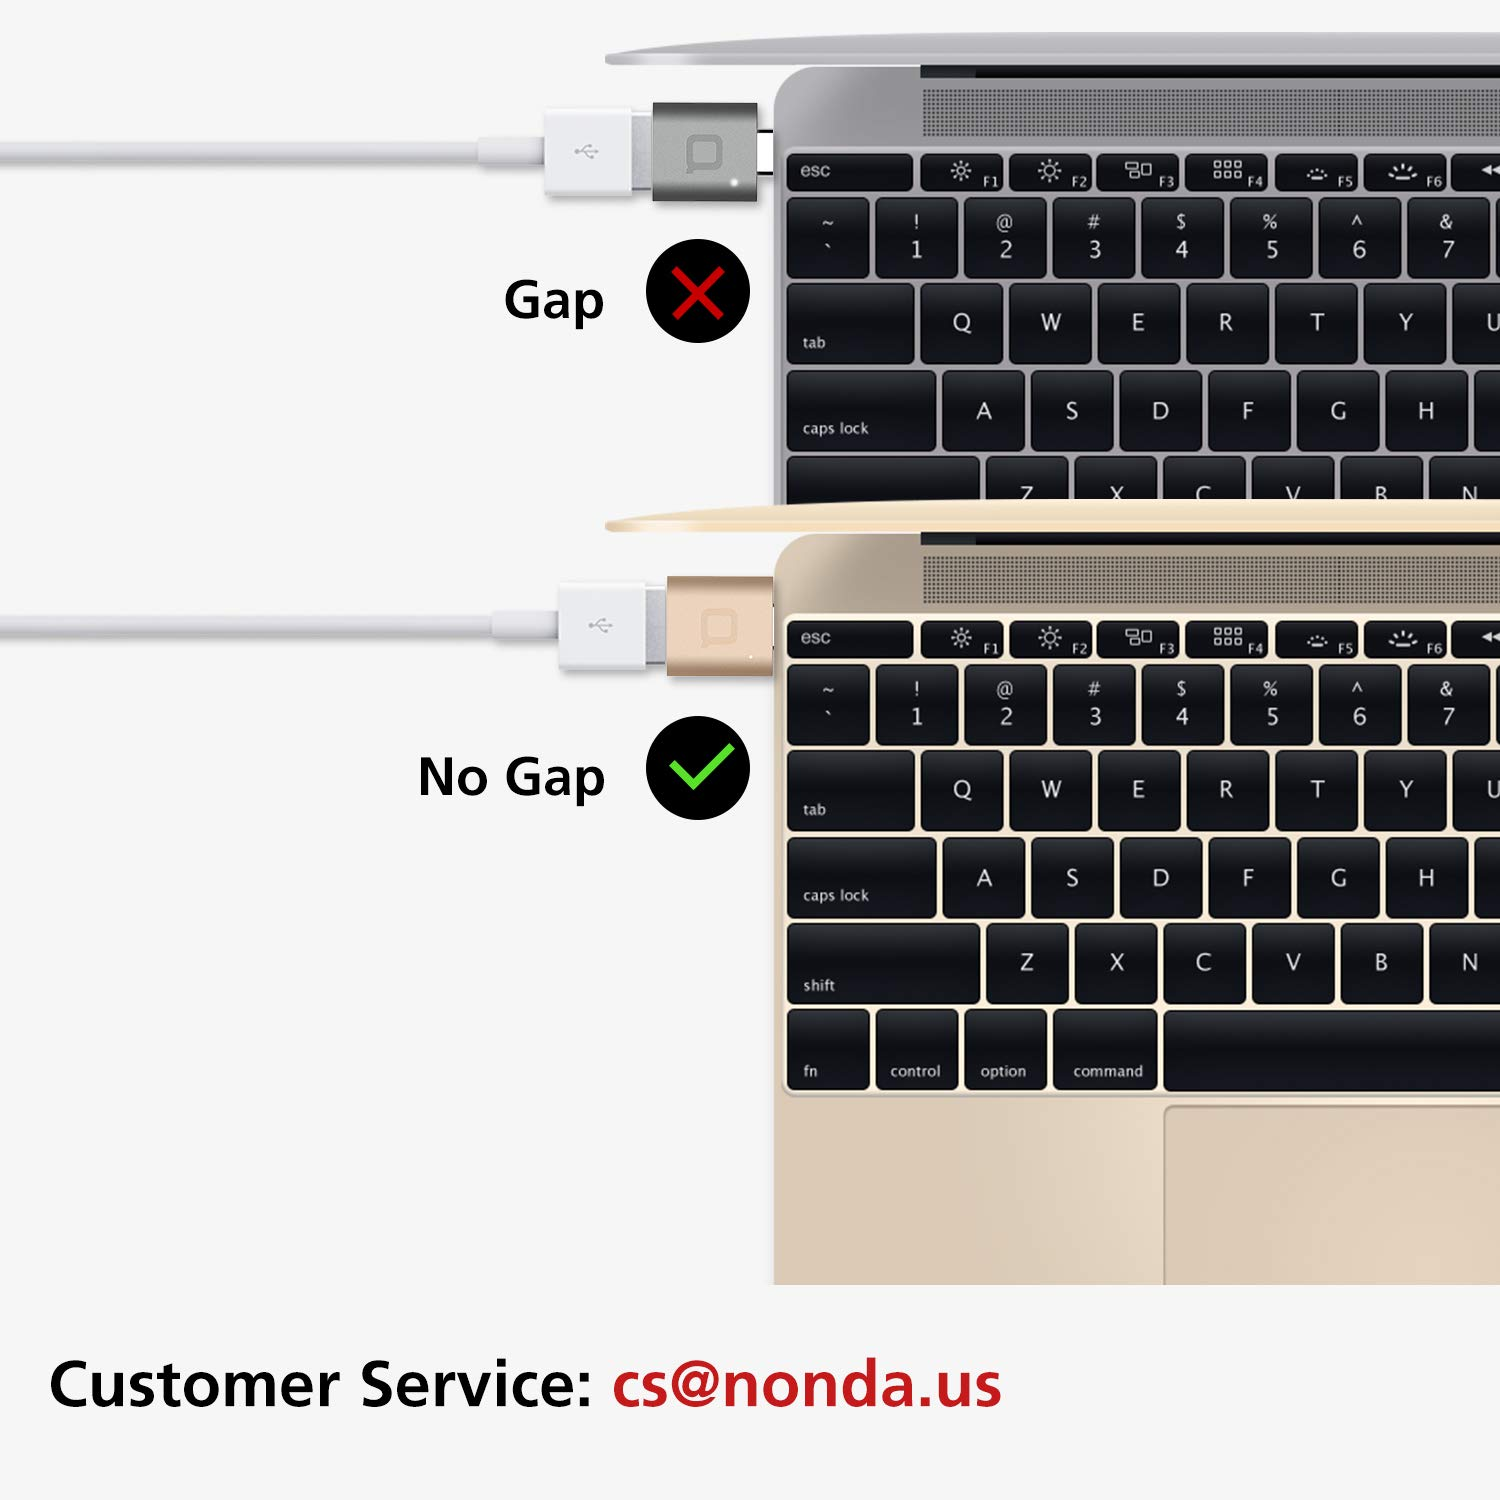 nonda USB C to USB AdapterUSBC to USB 30 AdapterUSB TypeC to USBThunderbolt 3 to USB Female Adapter